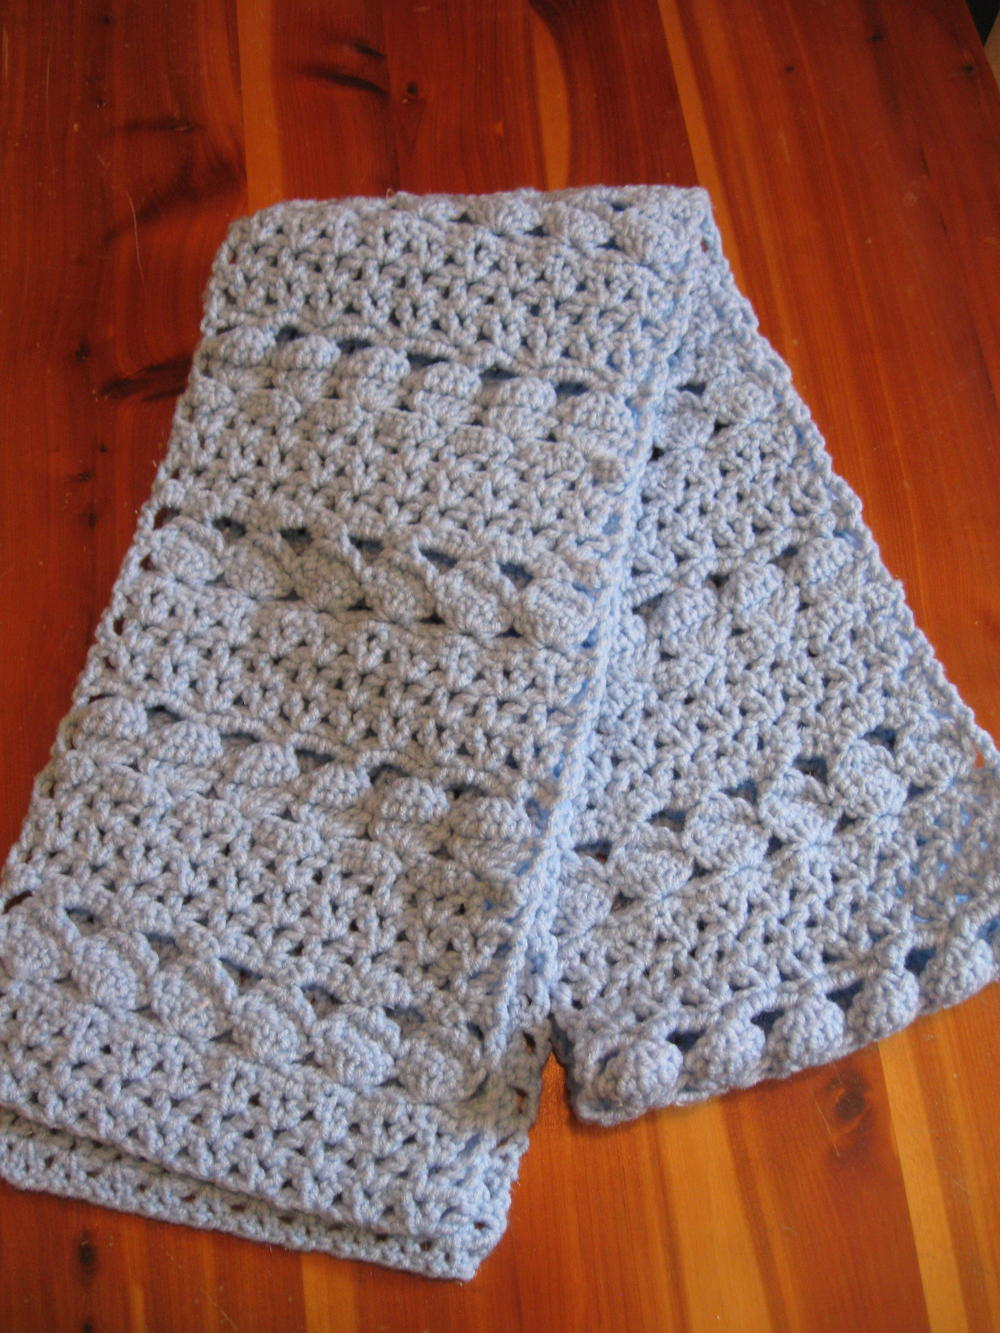 Crochet Pattern For Scarf Easy : Cozy Blue Crochet Scarf AllFreeCrochet.com